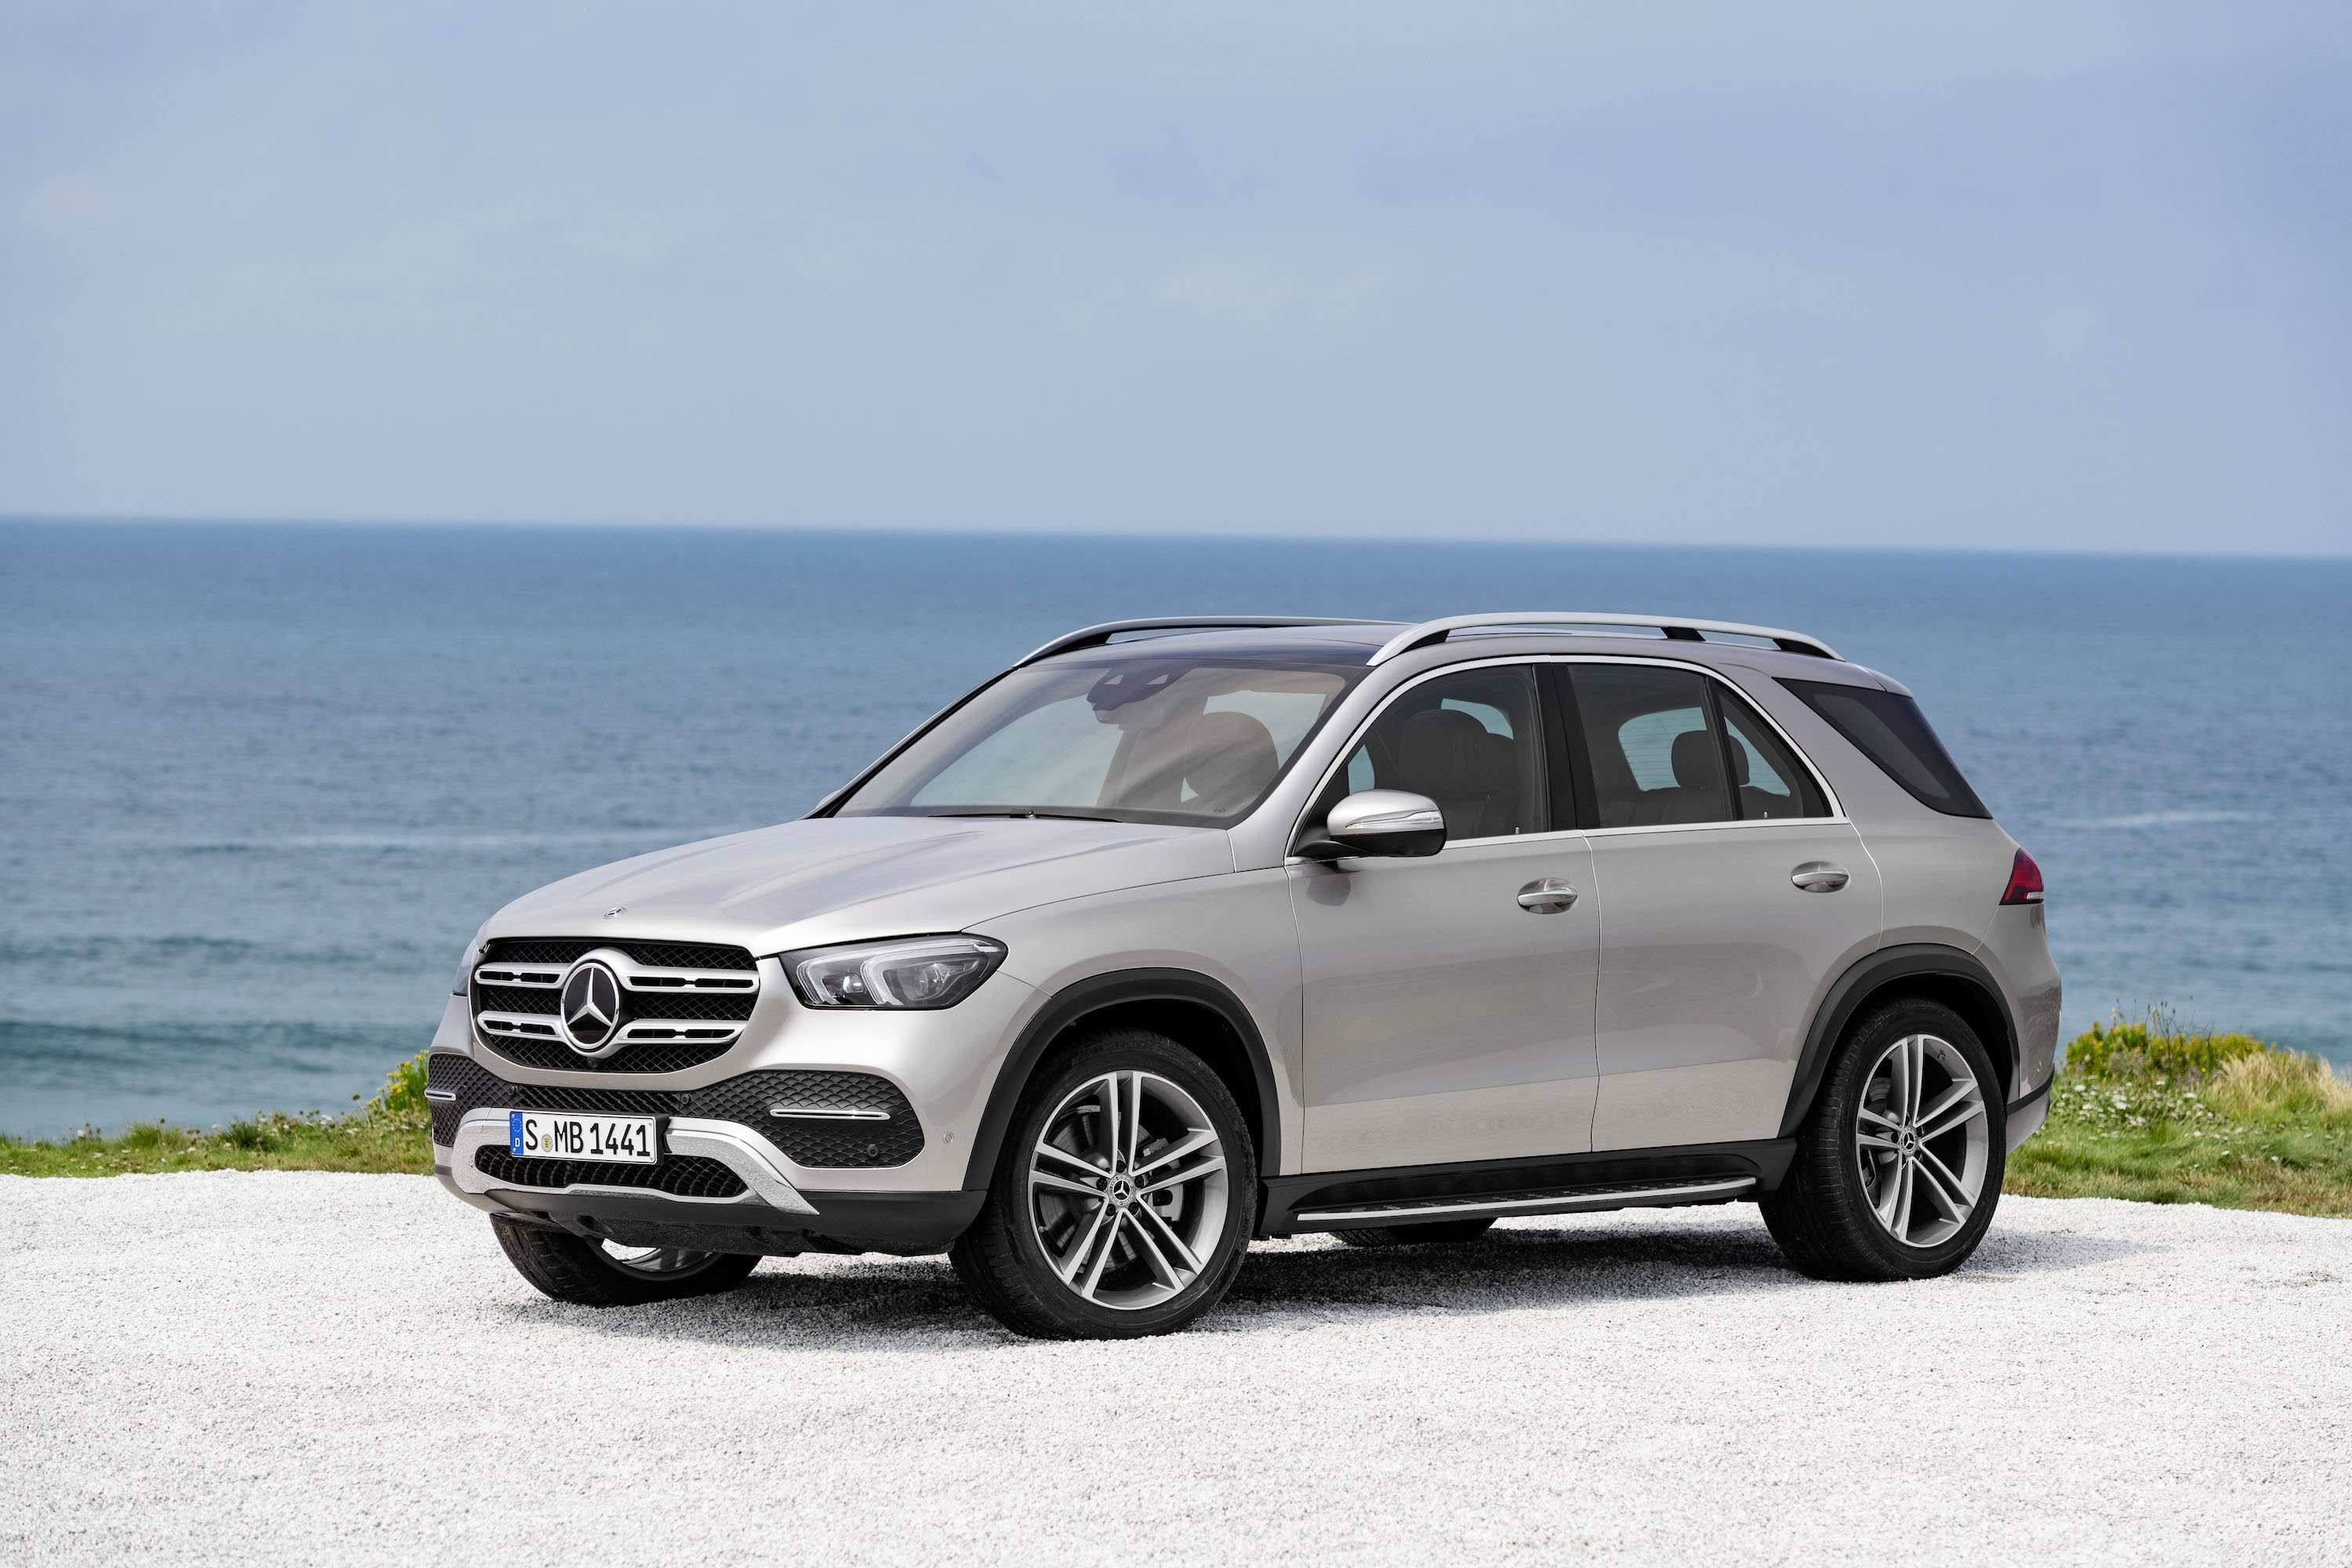 92 The 2020 Mercedes Ml Class Review And Release Date